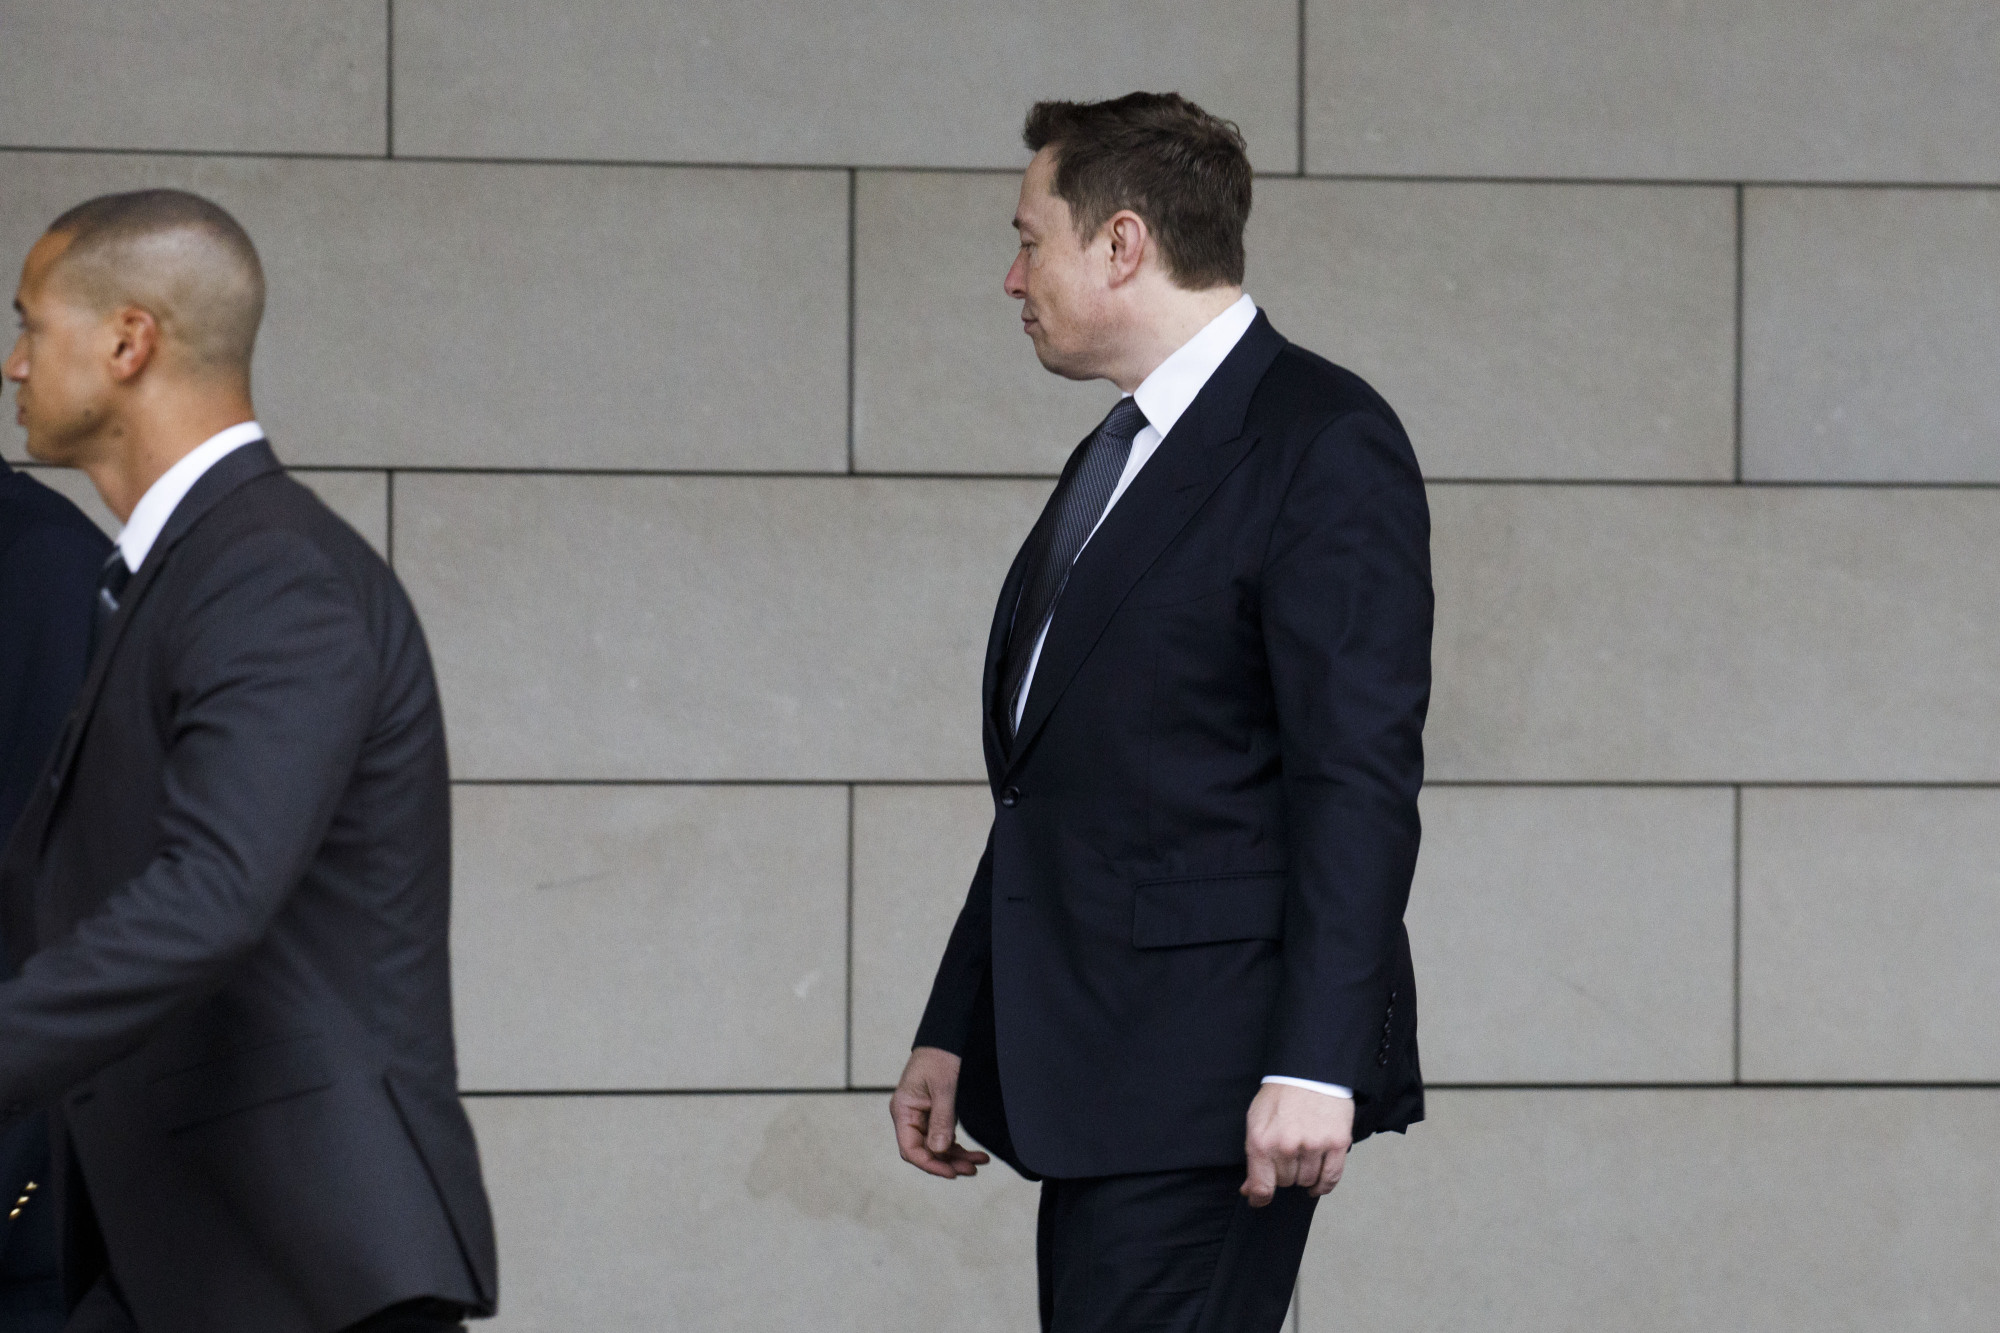 Elon Musk, chief executive officer of Tesla Inc., arrives to federal court in Los Angeles on Wednesday. British caver Vernon Unsworth sued Musk after the chief executive officer of Tesla and SpaceX referred to him as a 'pedo guy' on Twitter. | BLOOMBERG